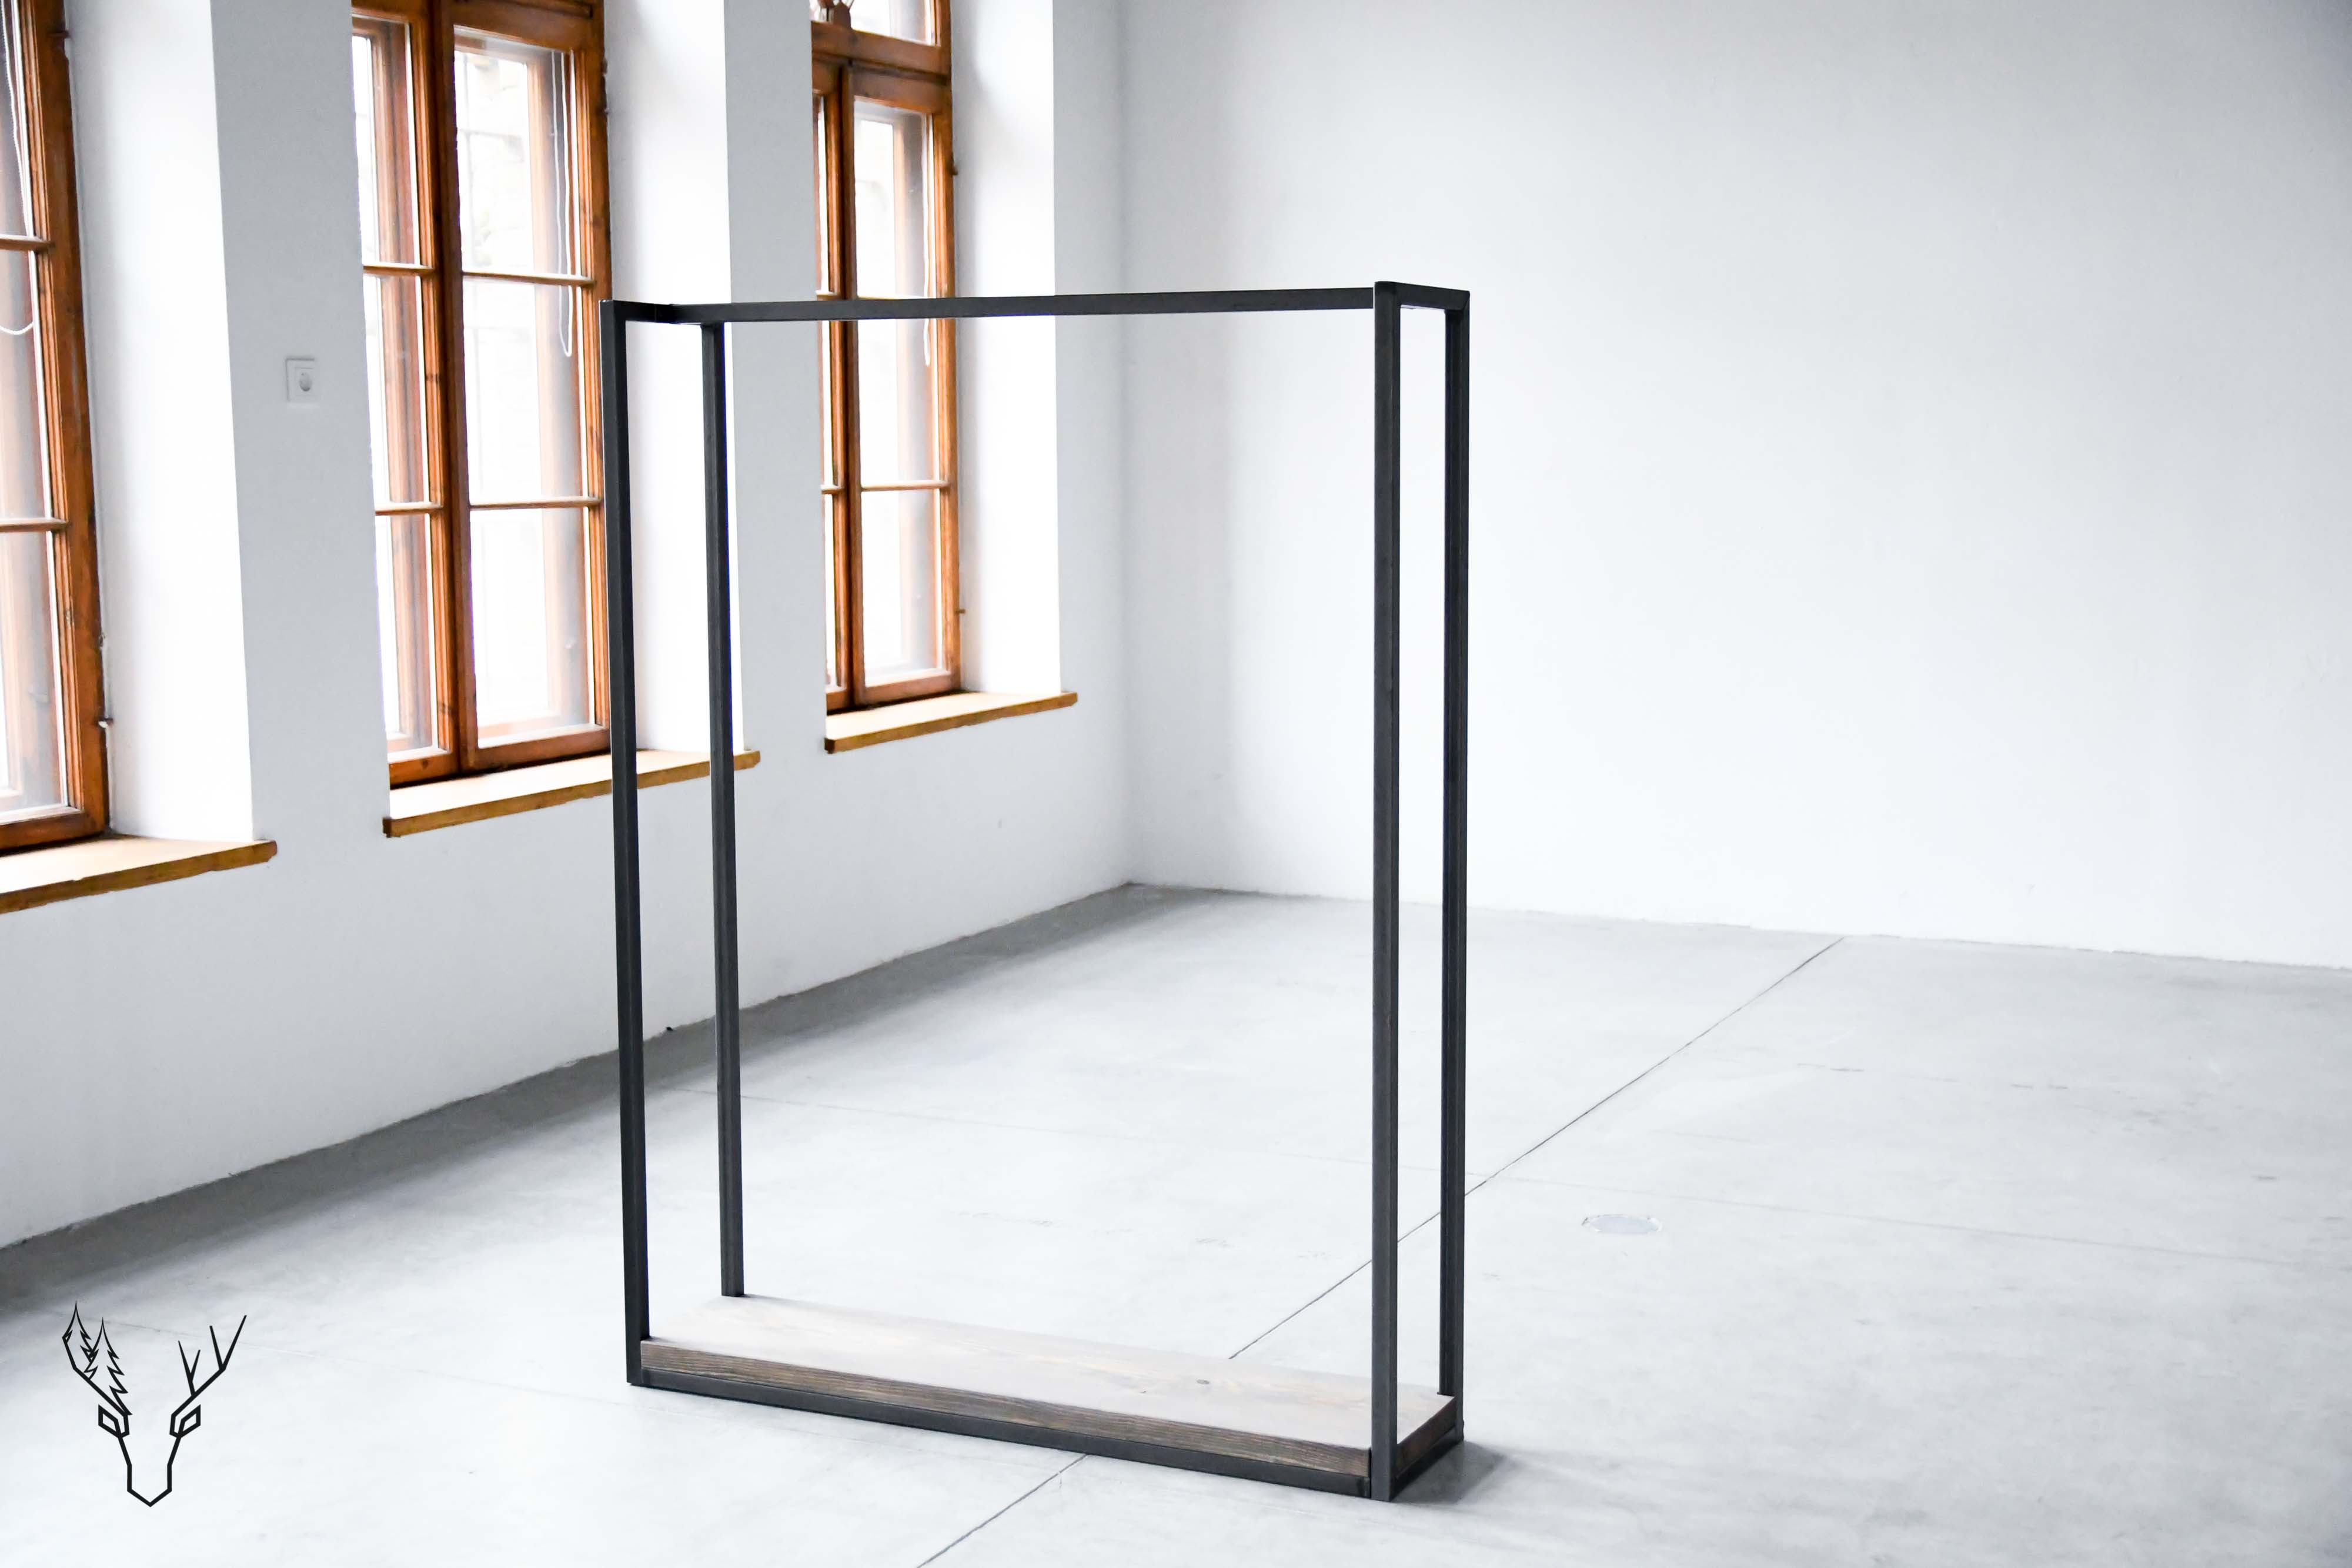 Clothing Rail collapsible № Six - Wild Wood Factory